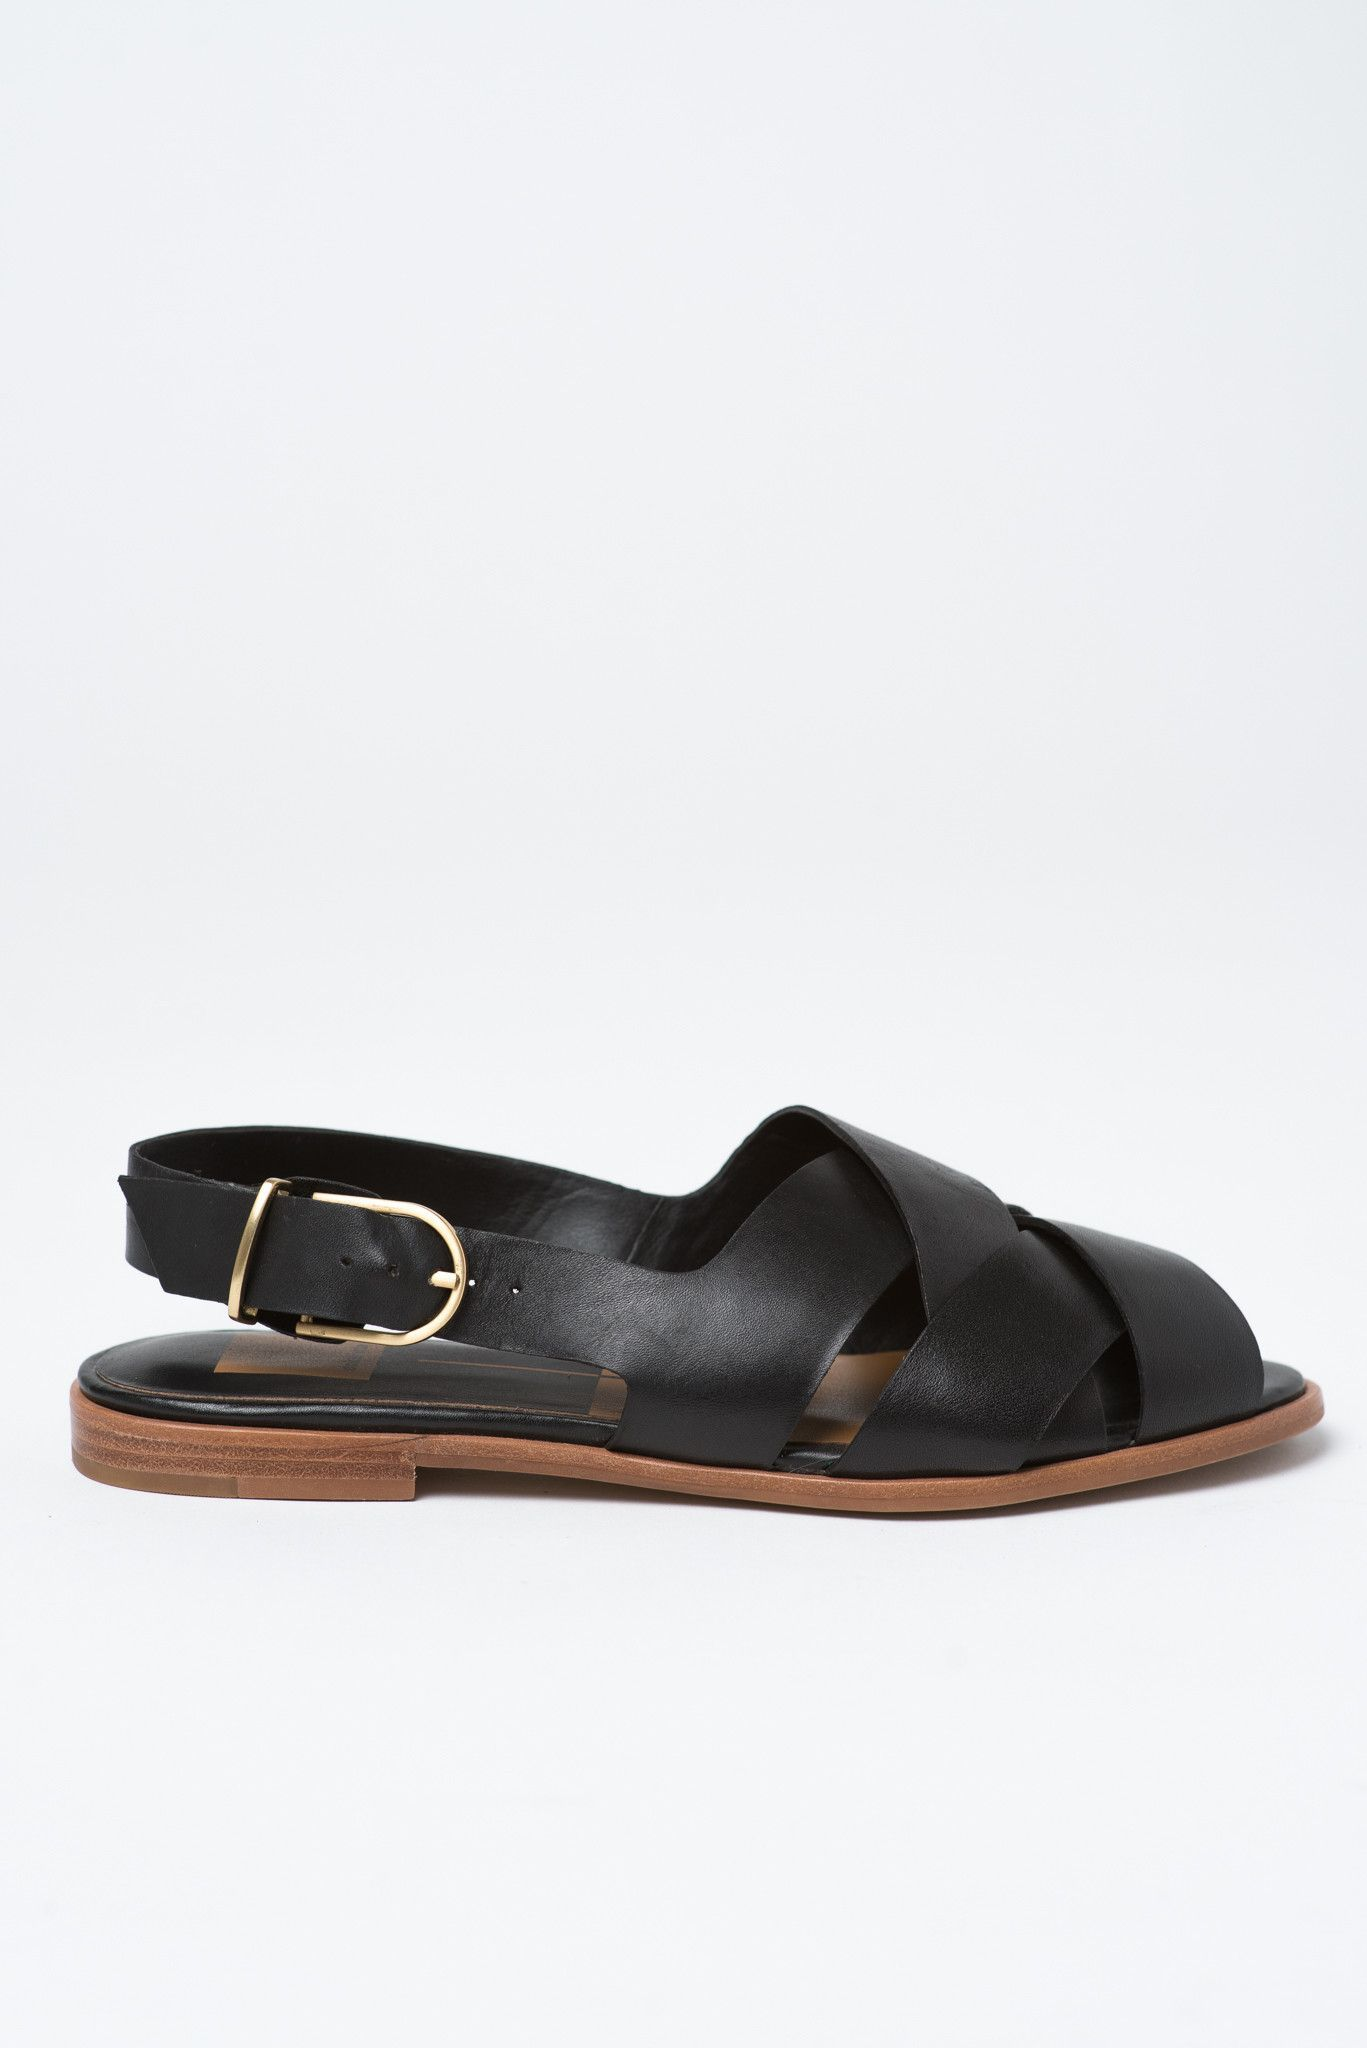 Watch The Clouds Roll Away In The Bay A Slip On Sandal